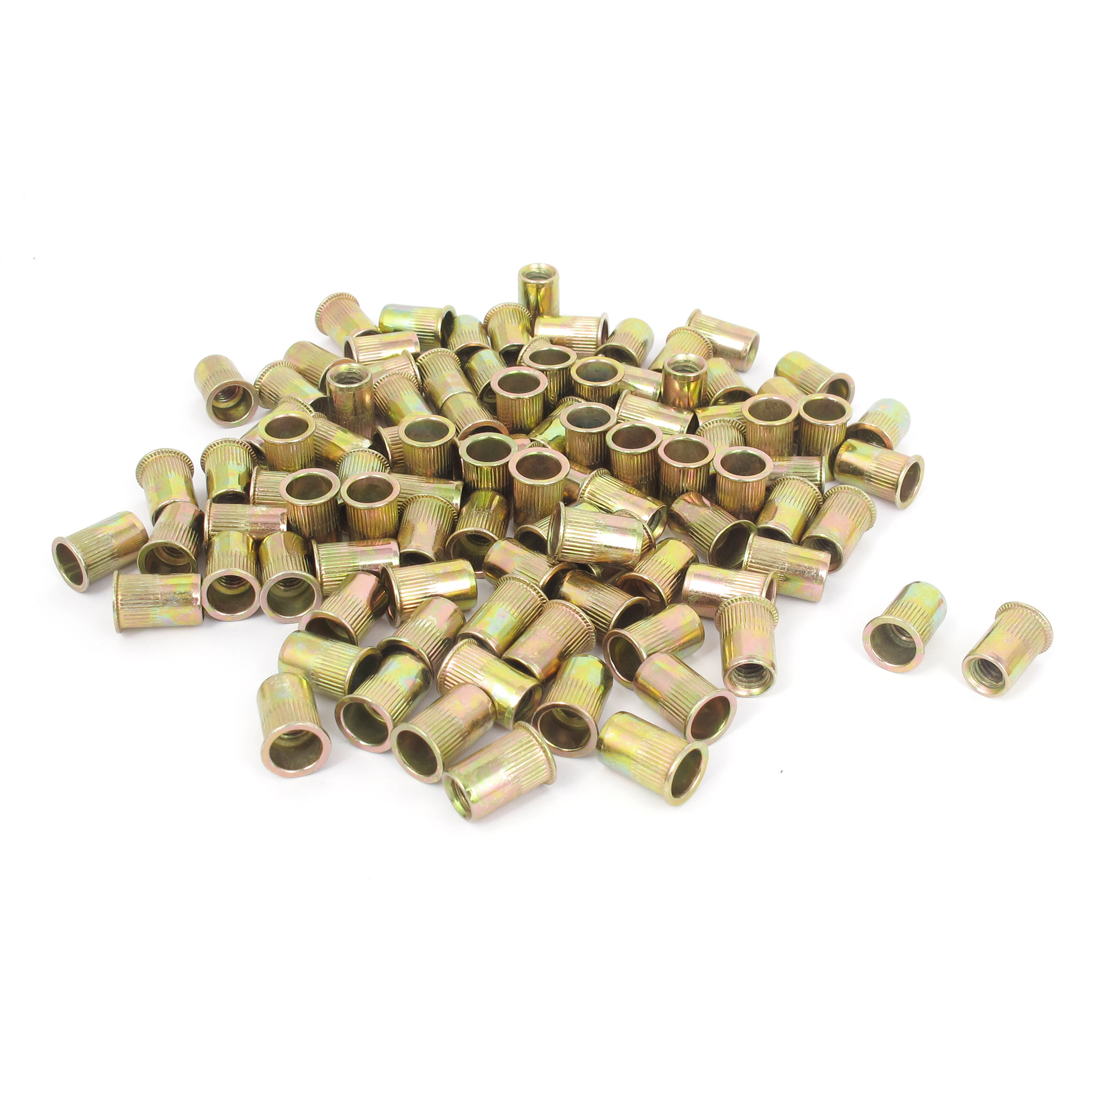 100 Pcs 14mm Long Flat Head Rivet Nut Insert Nutserts Fasteners M6x1.0mm